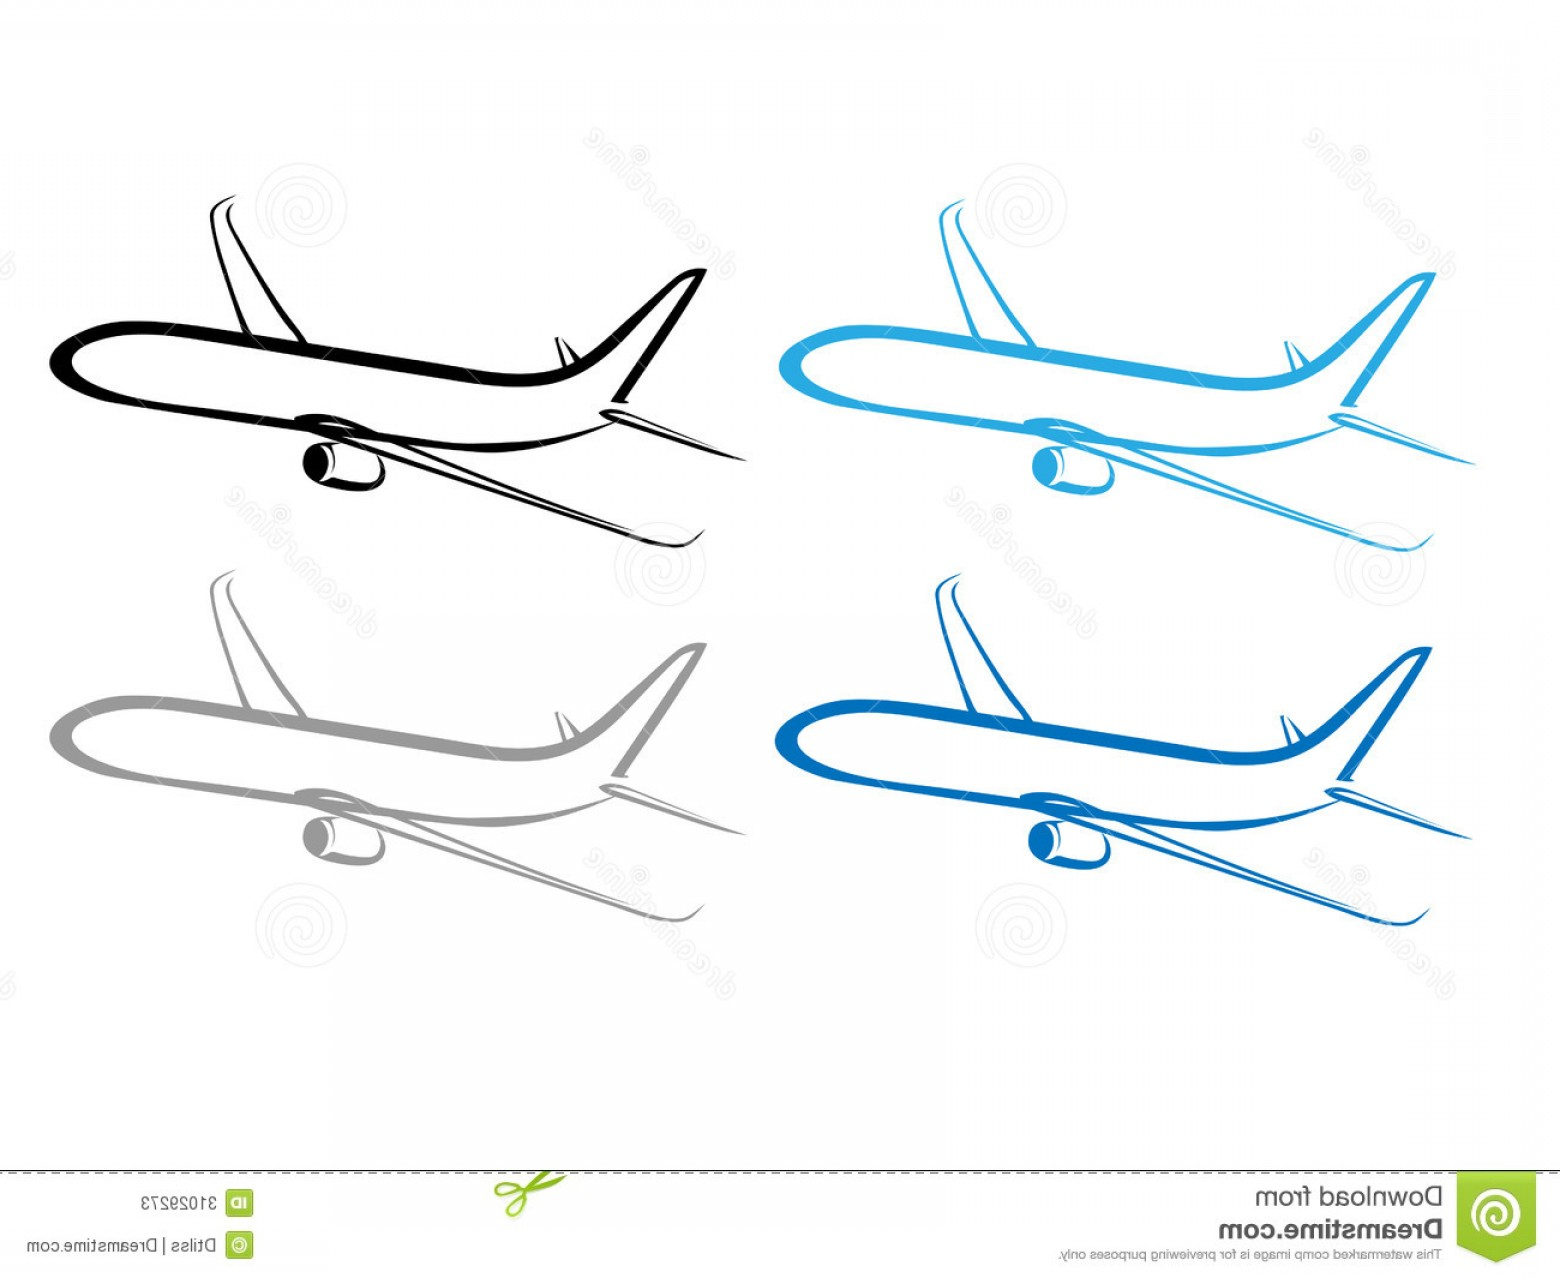 Vector Airplane Symbol: Stock Photos Airplane Plane Airplane Symbol Stylized Airplane Vector Flying Vector Design Image